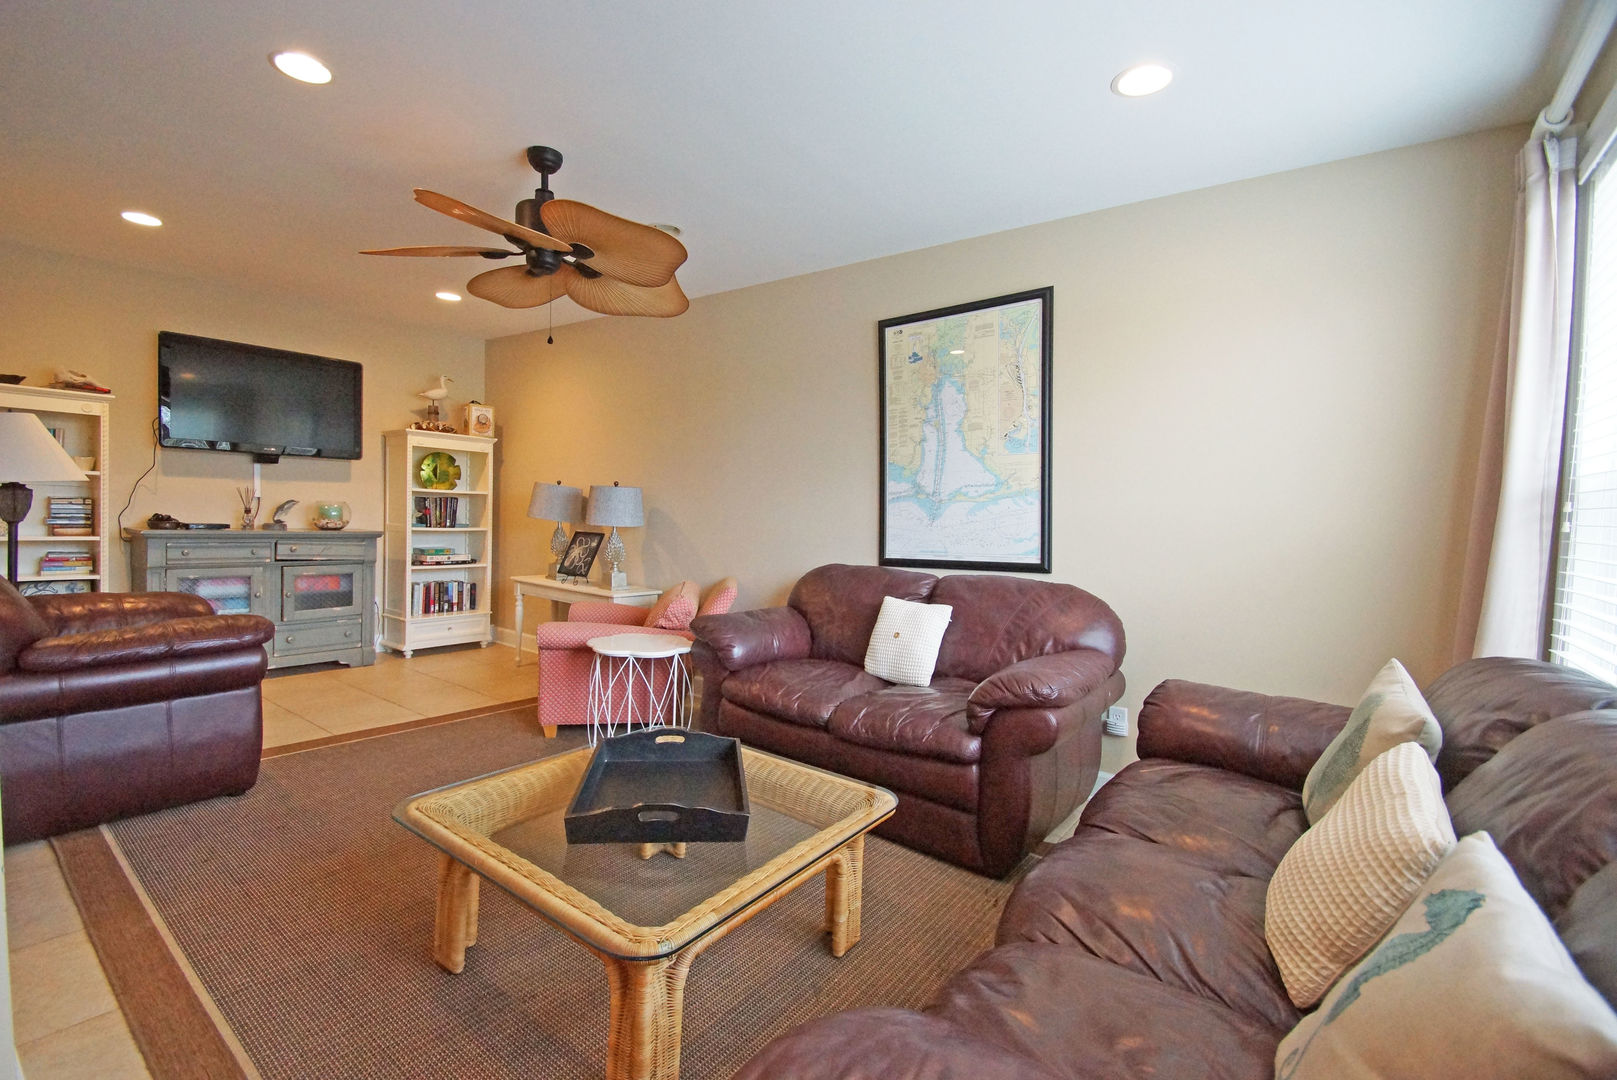 Buffet Console, TV, Sofas, Coffee Table, and Ceiling Fan.